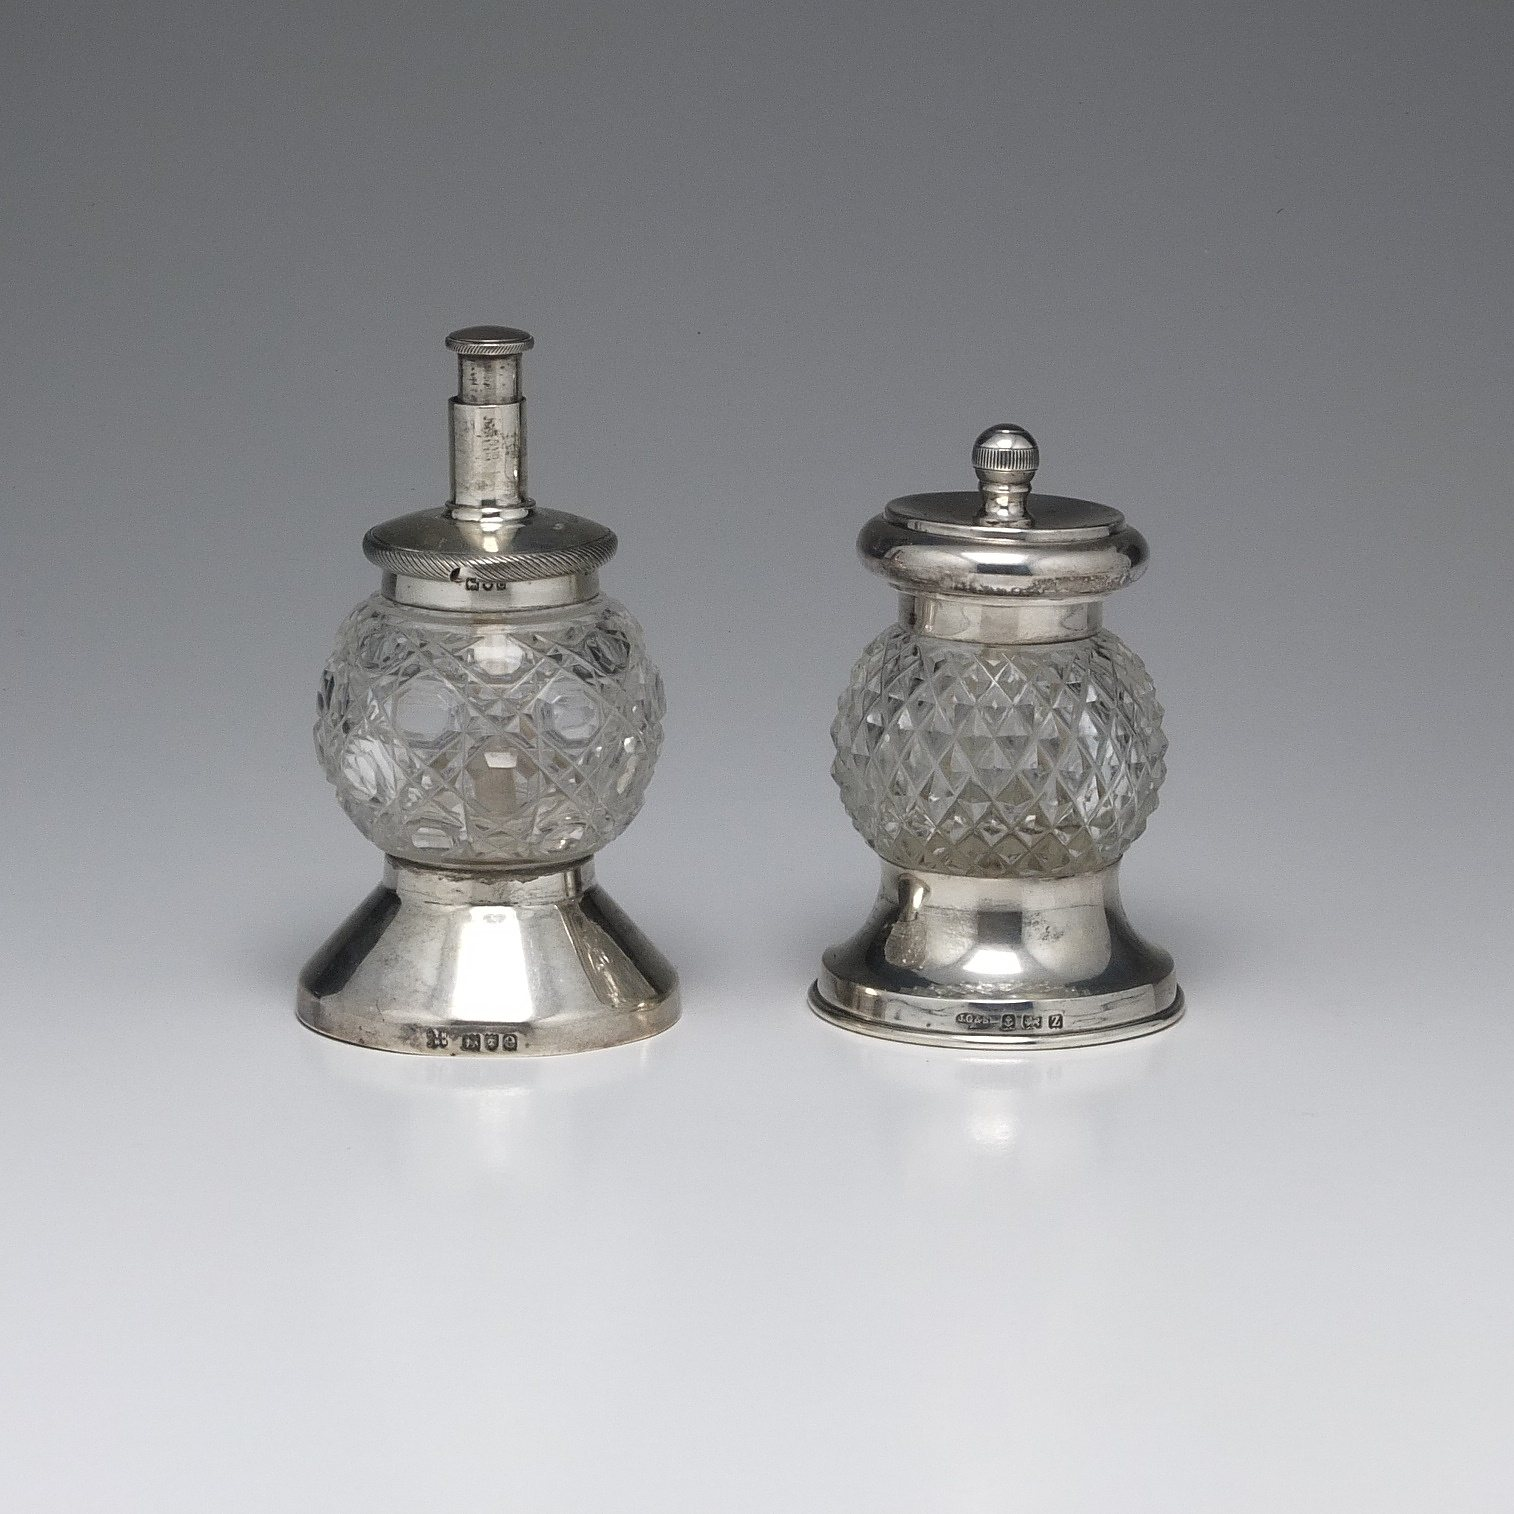 'Sterling Silver and Cut Crystal Salt and Pepper Set Hukin & Heath London 1900 and John Grinsell & Sons Birmingham 1924'